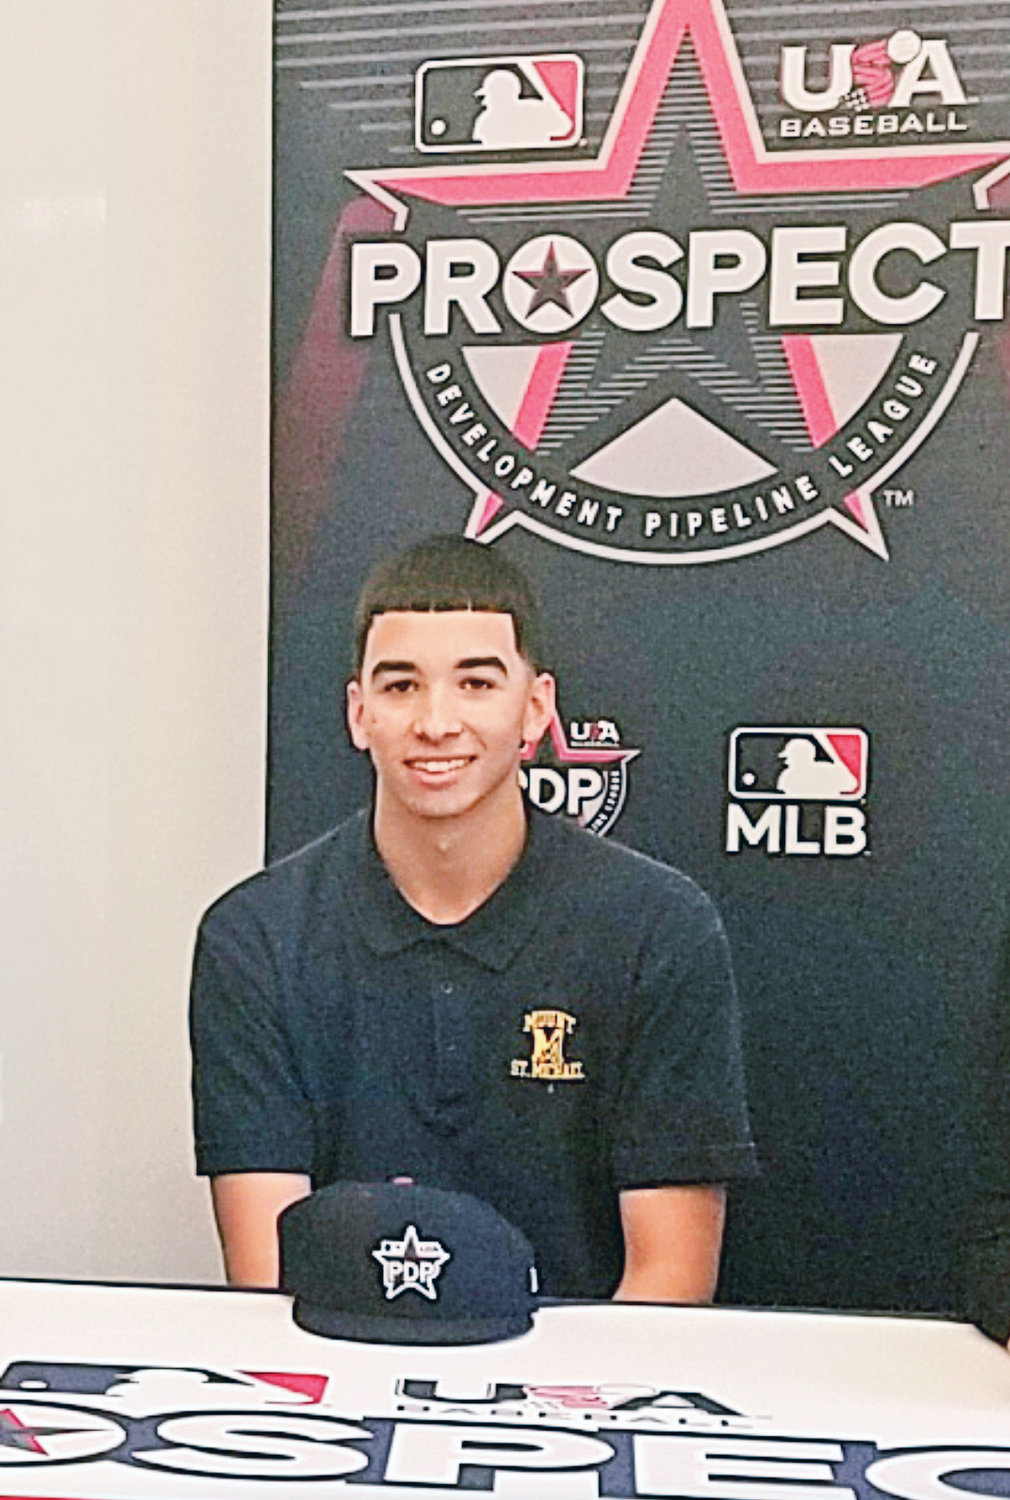 OFF TO PROS—Mount St. Michael Academy graduate Alex Santos was selected by the Houston Astros with their first pick in the 2020 Major League Baseball Draft June 11. In this photo, Santos celebrates his selection to the inaugural Prospect Development Pipeline League with family, friends and coaches at Mount St. Michael in 2019.